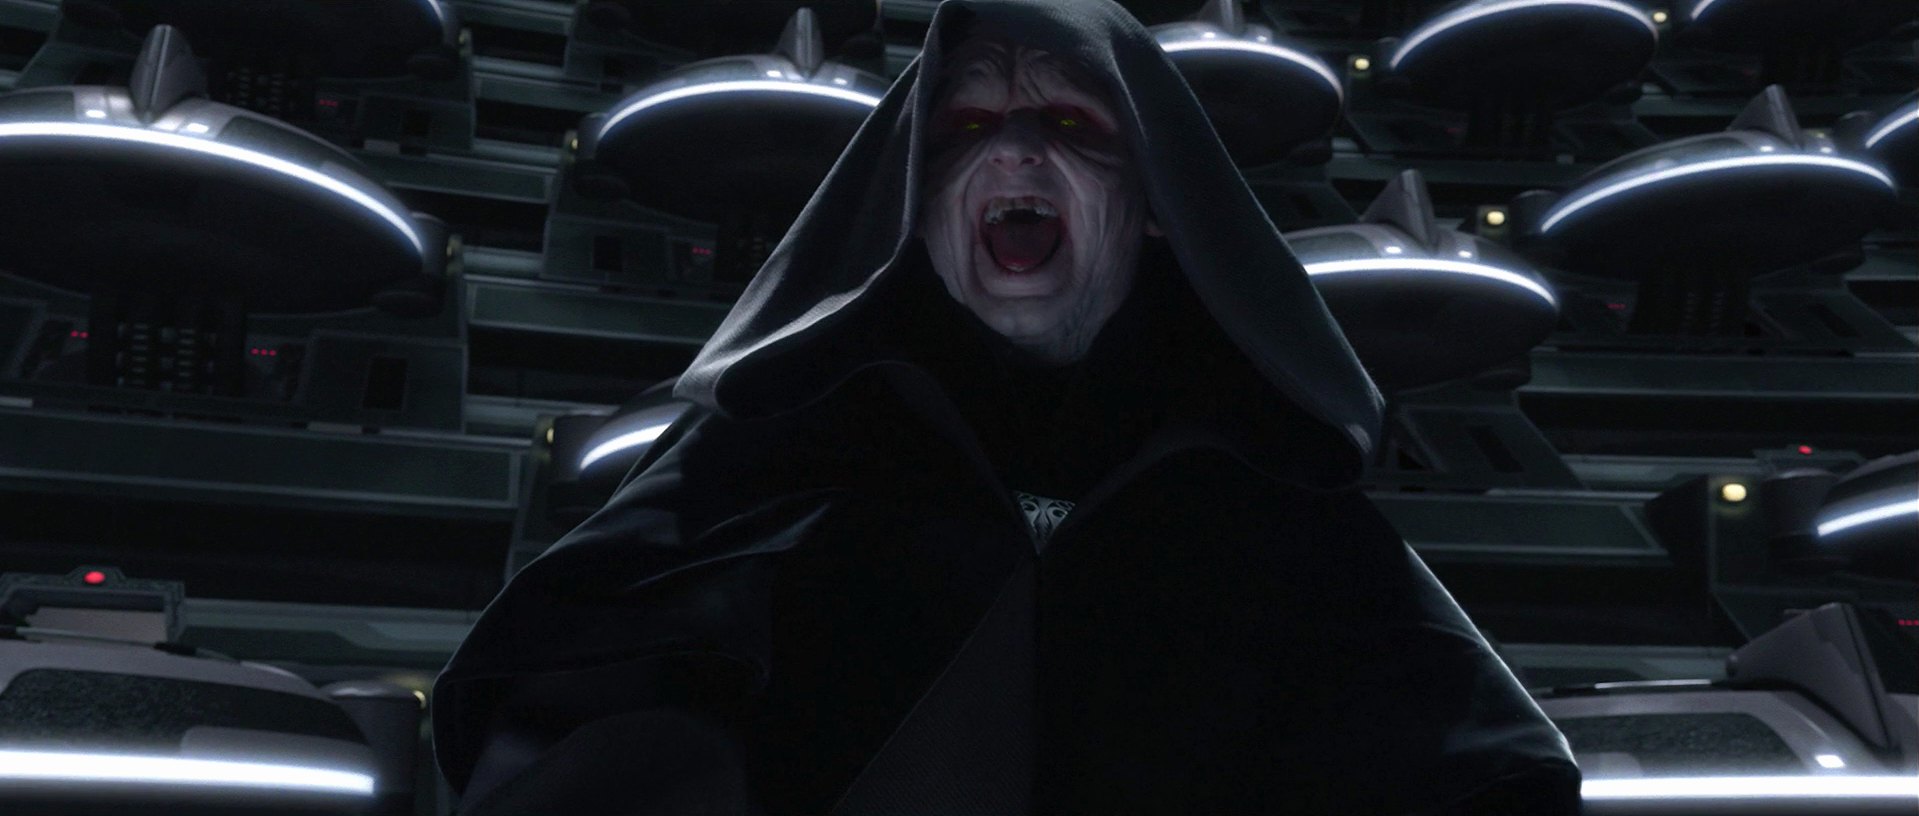 http://img3.wikia.nocookie.net/__cb20130205192323/starwars/images/3/3d/Sidlaugh.png